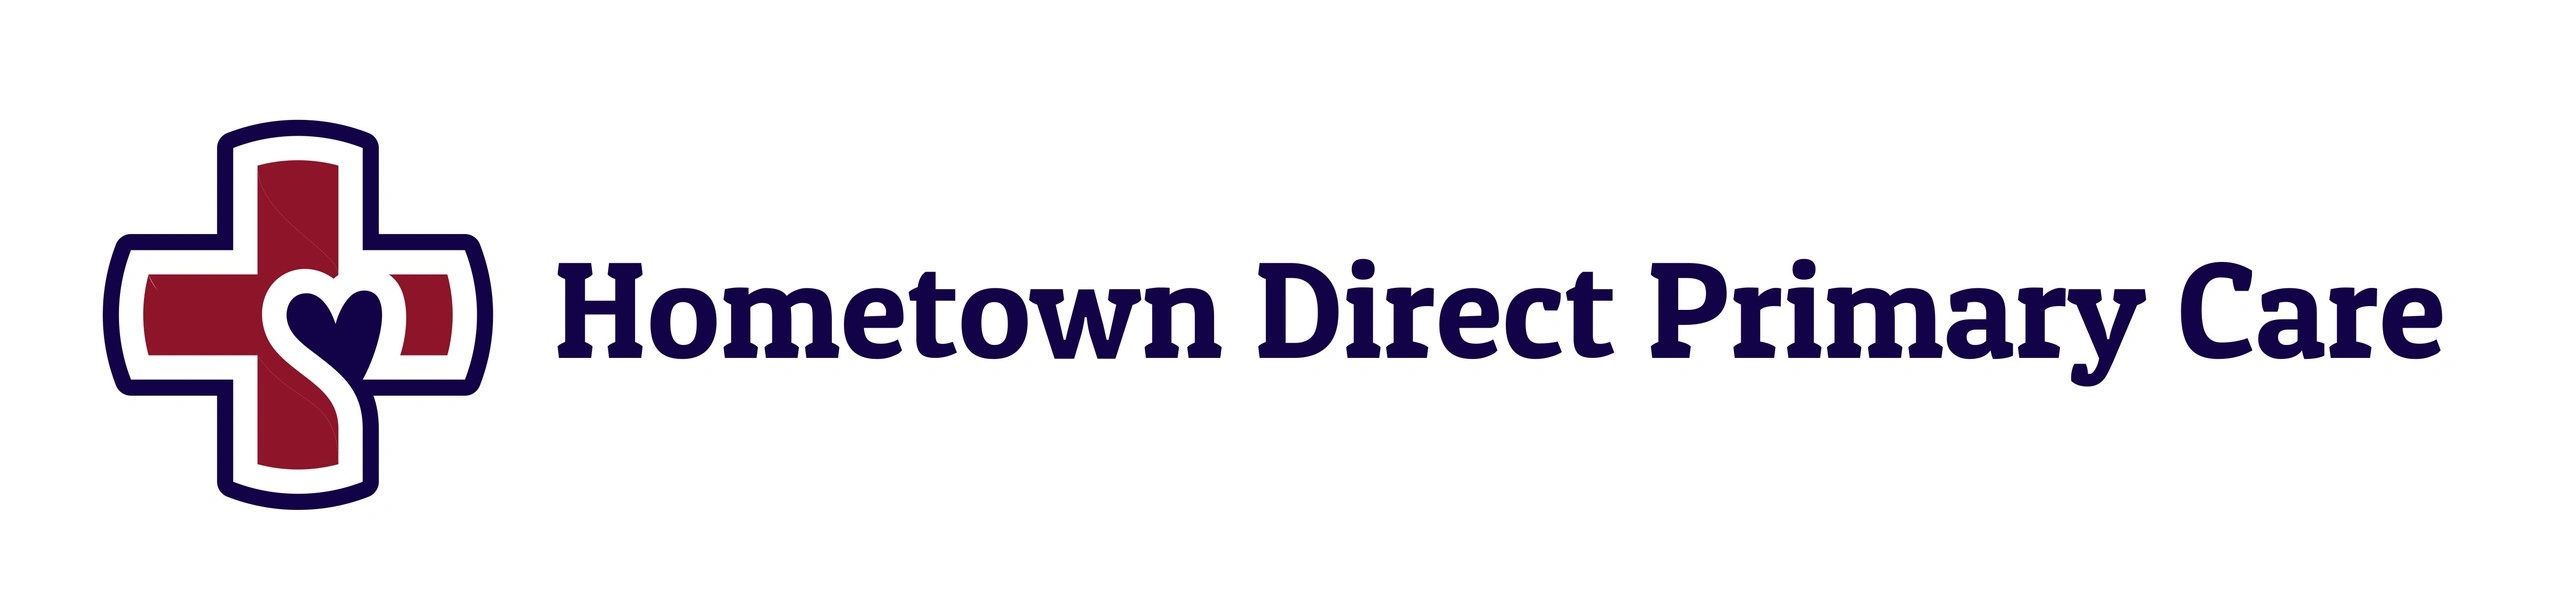 Hometown Direct Primary Care